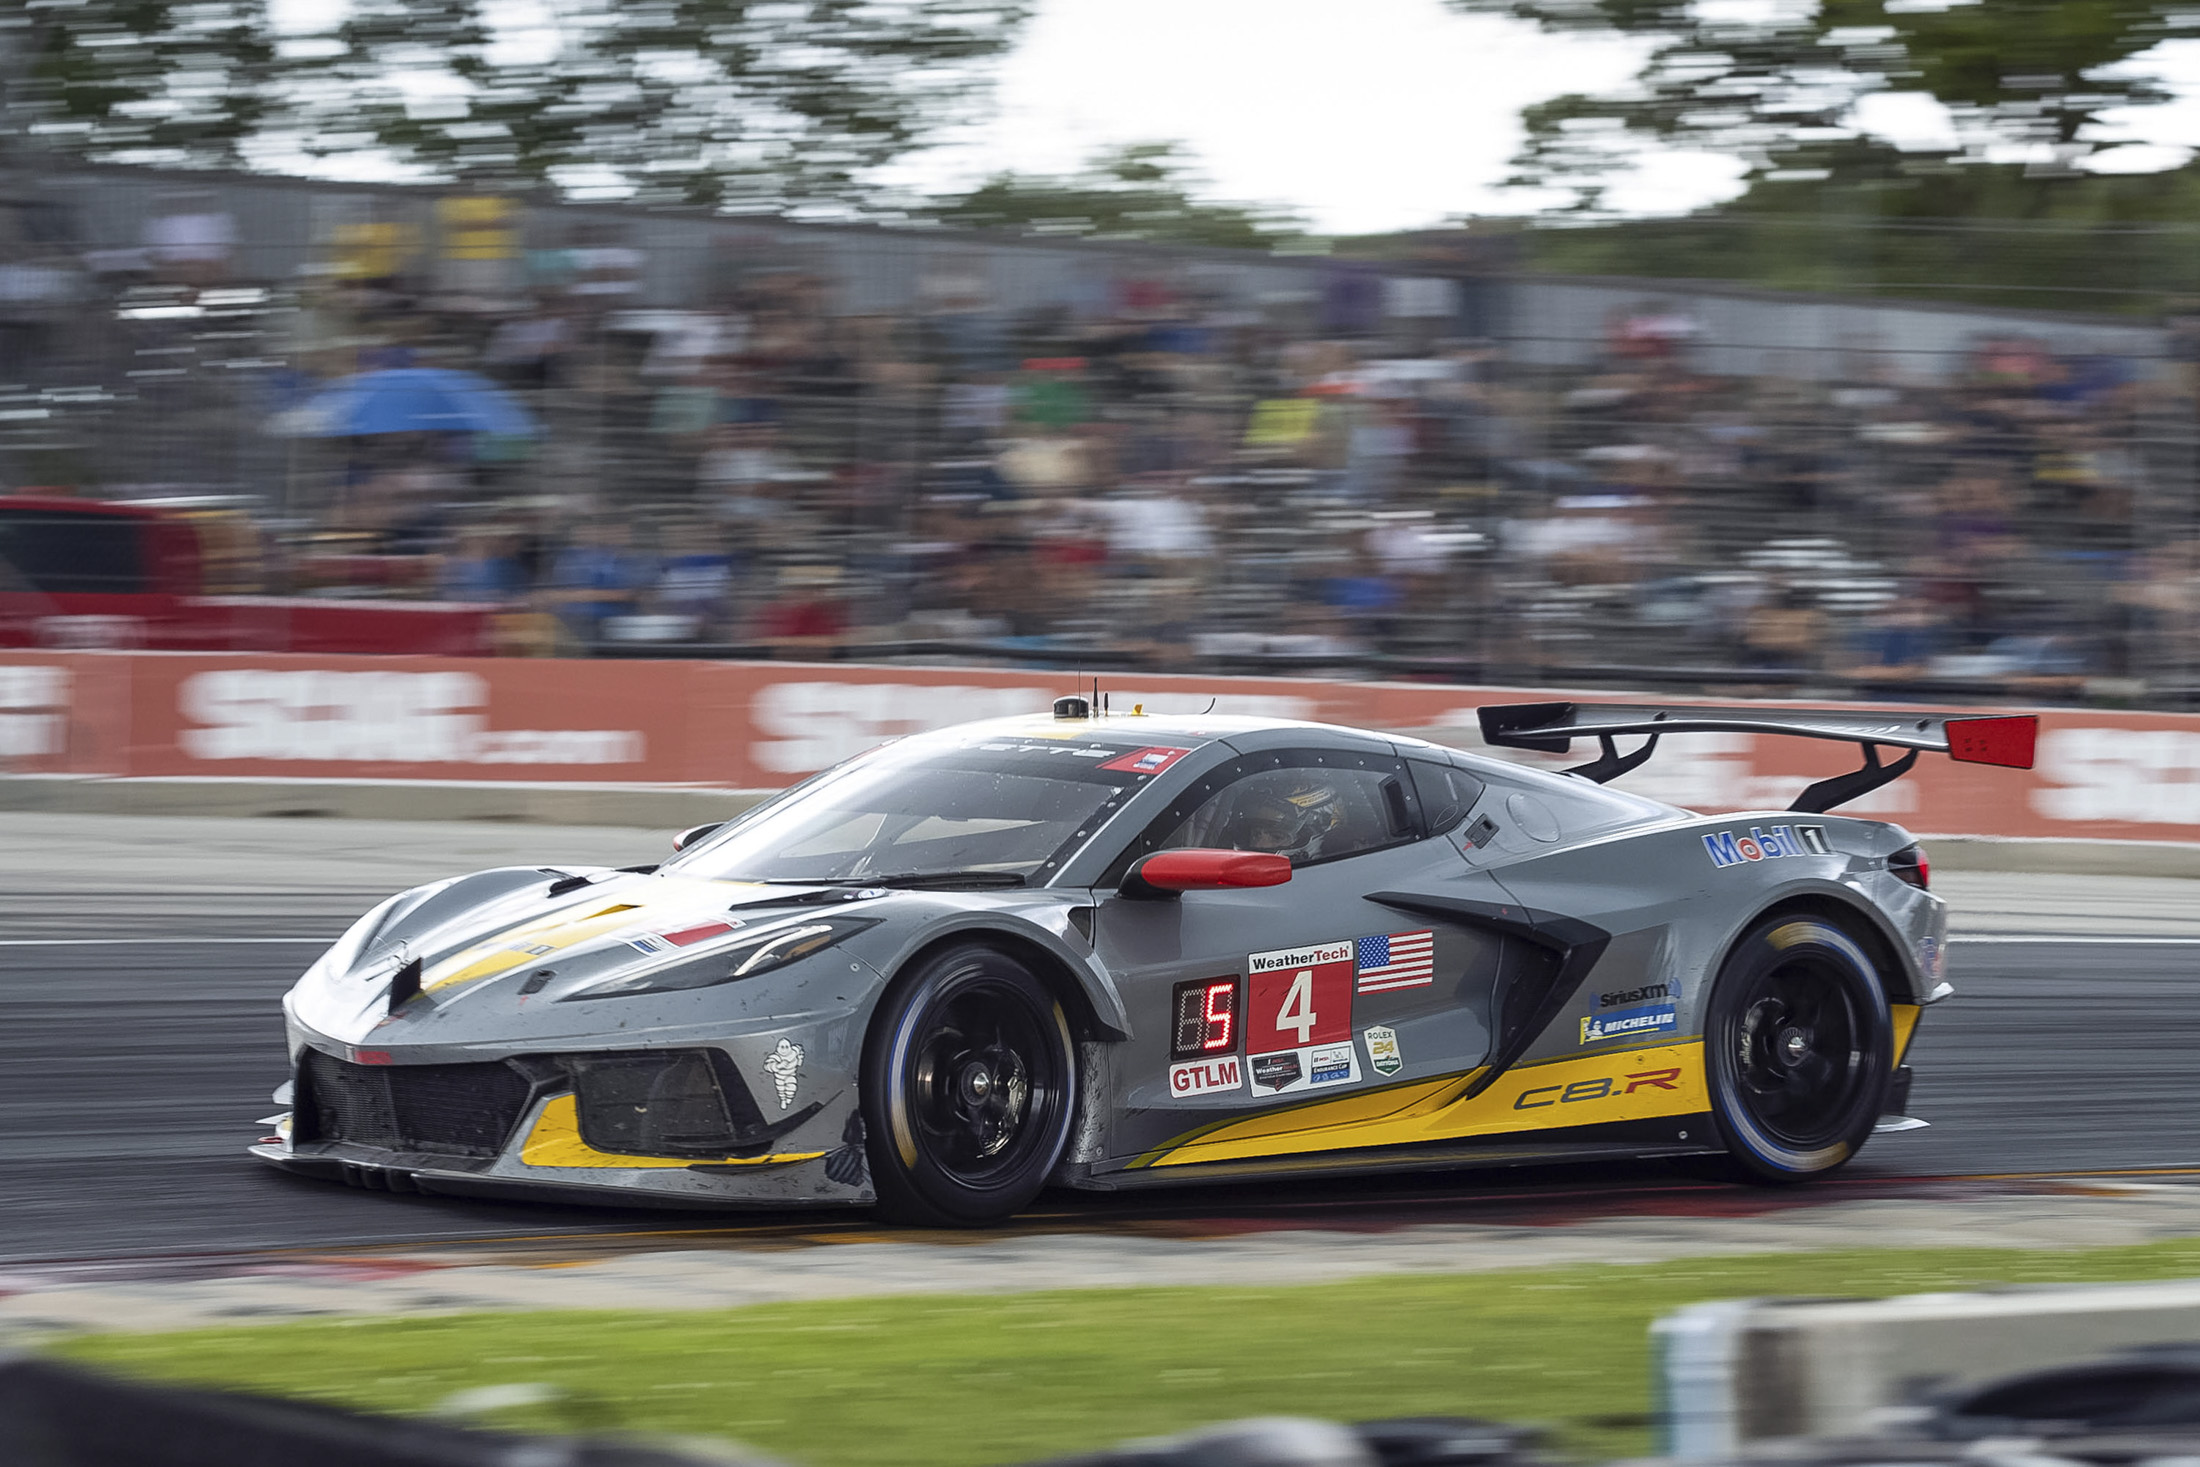 The #4 Mobil 1/SiriusXM Chevrolet Corvette C8.R driven by Oliver Gavin and Tommy Milner race to a second place finish Sunday, August 2, 2020 during the IMSA WeatherTech SportsCar Championship race at Road America in Elkhart, Wisconsin. This is the second podium in a row for Gavin and Milner who won at Sebring during this COVID-19 pandemic impacted IMSA race season. (Photo by Richard Prince for Chevy Racing)